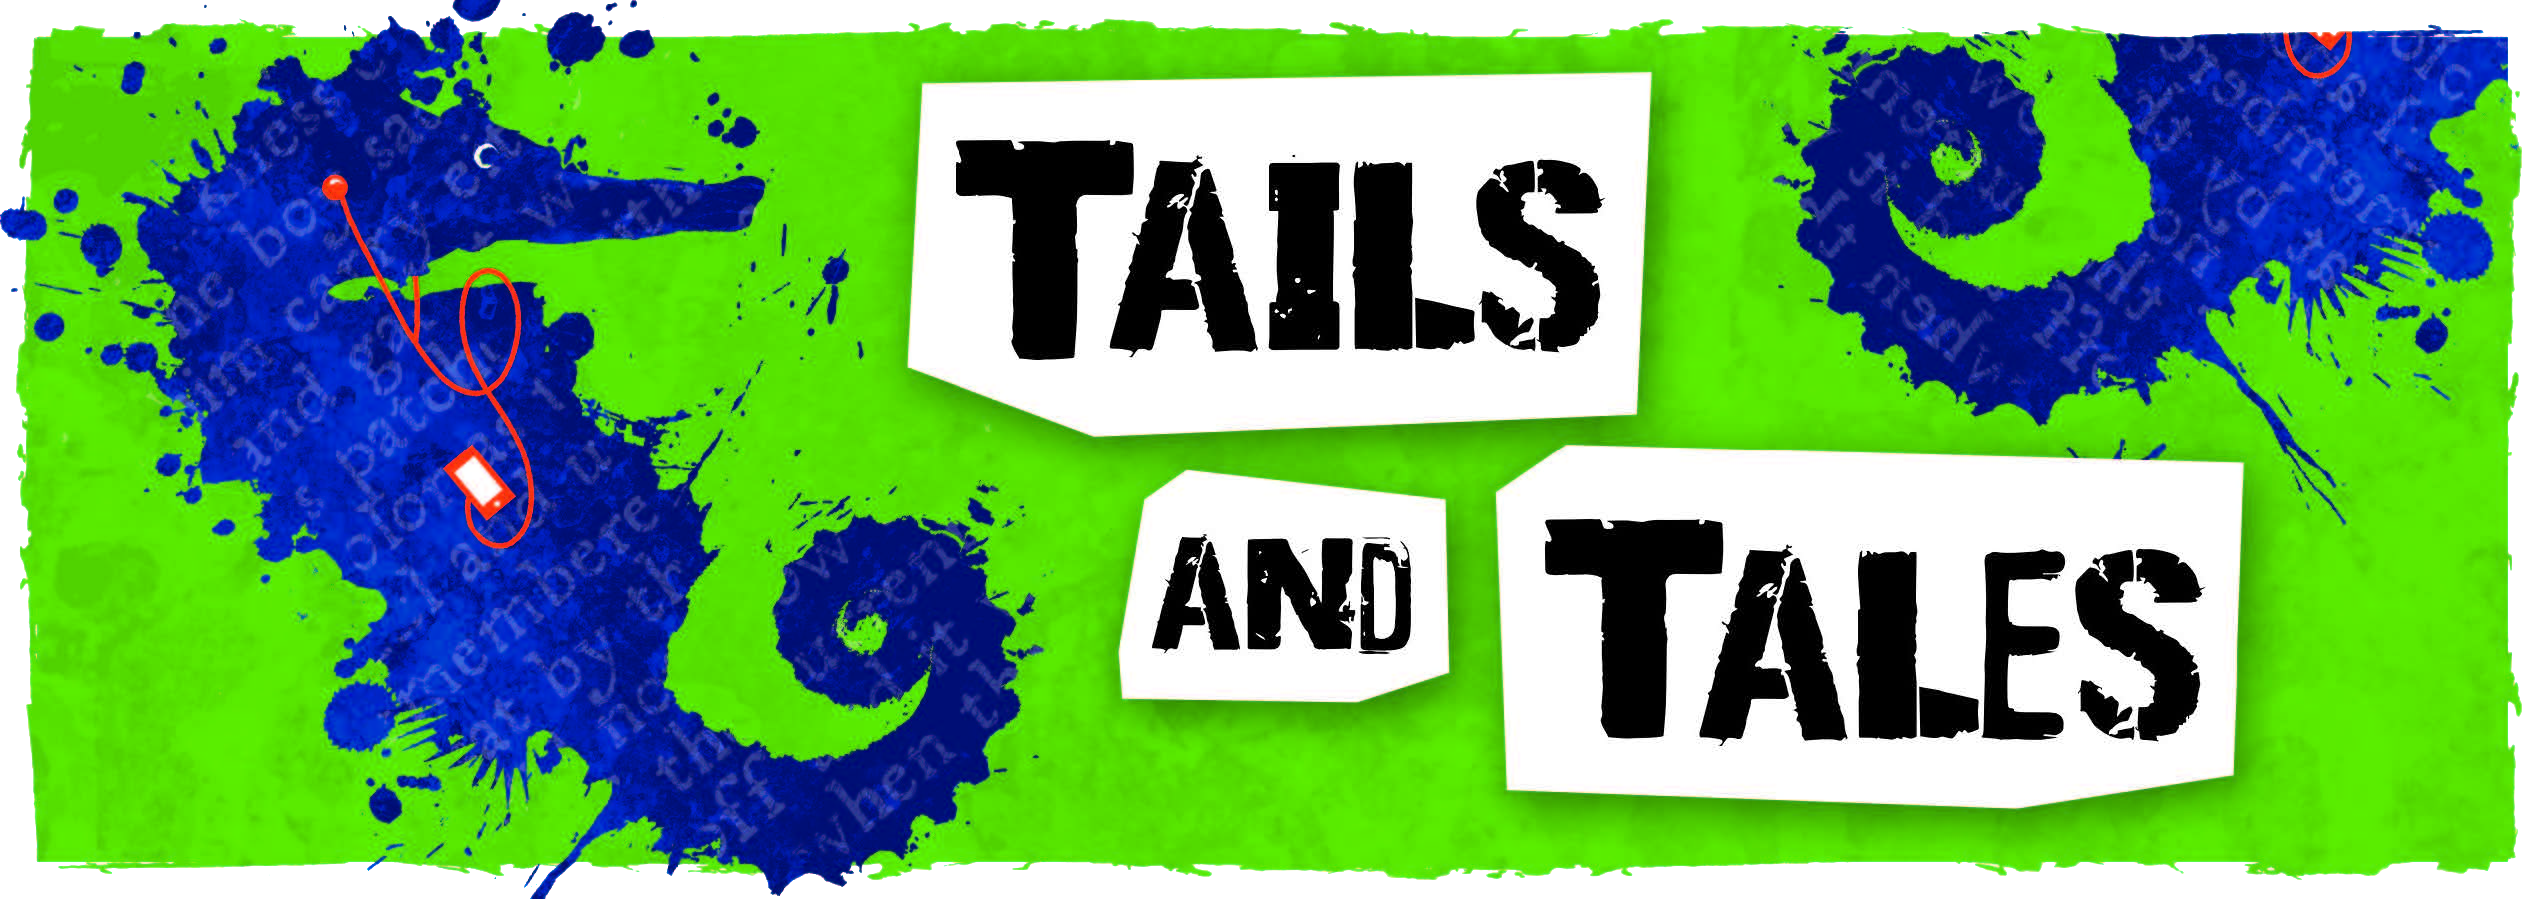 Summer Reading Logo: Green banner with a blue seahorse listening to an audio book and the text Tails and Tales